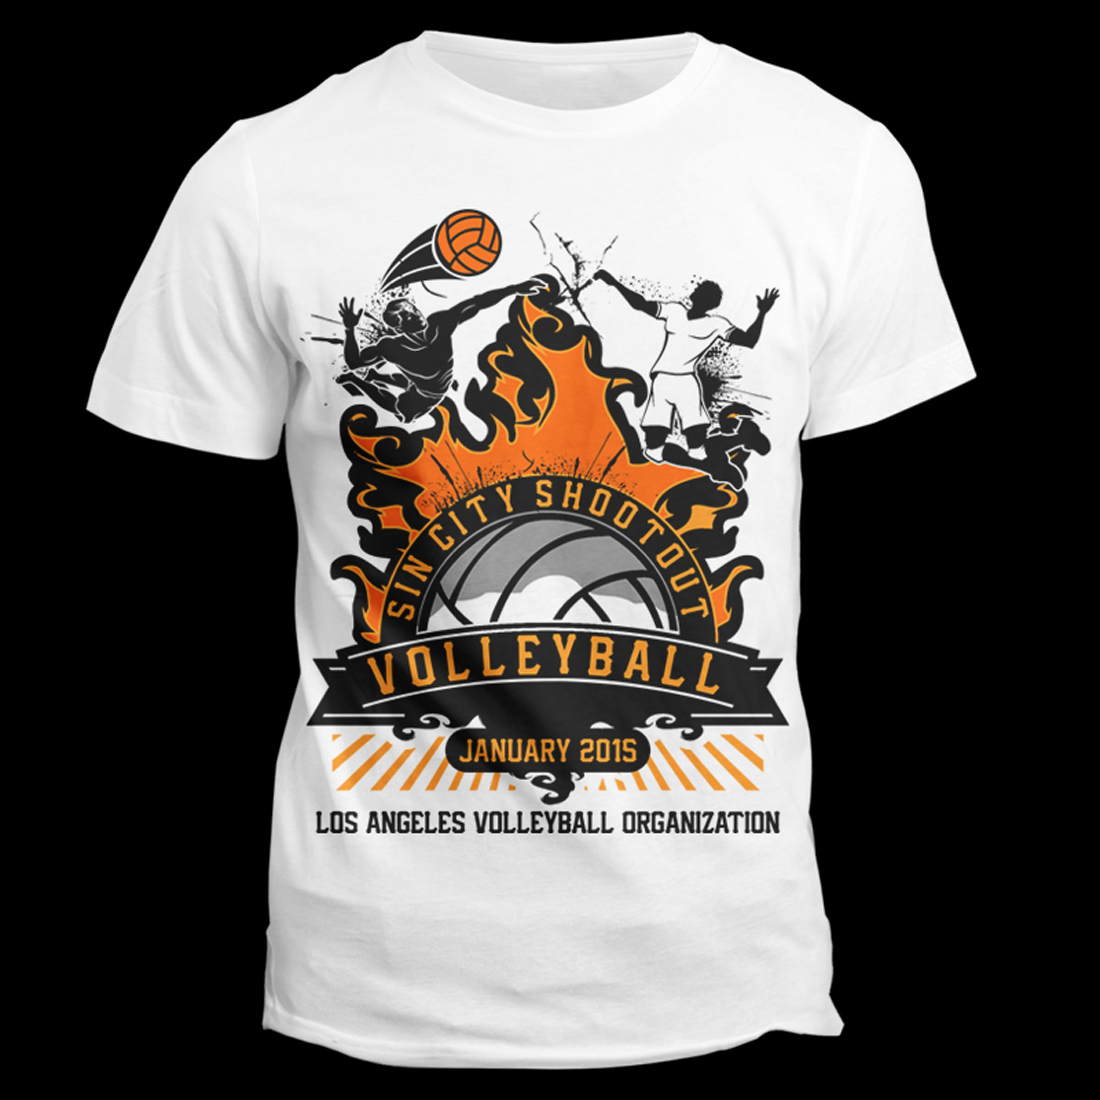 Modern Bold Festival T Shirt Design For Los Angeles Volleyball Organization Inc In United States 5132368